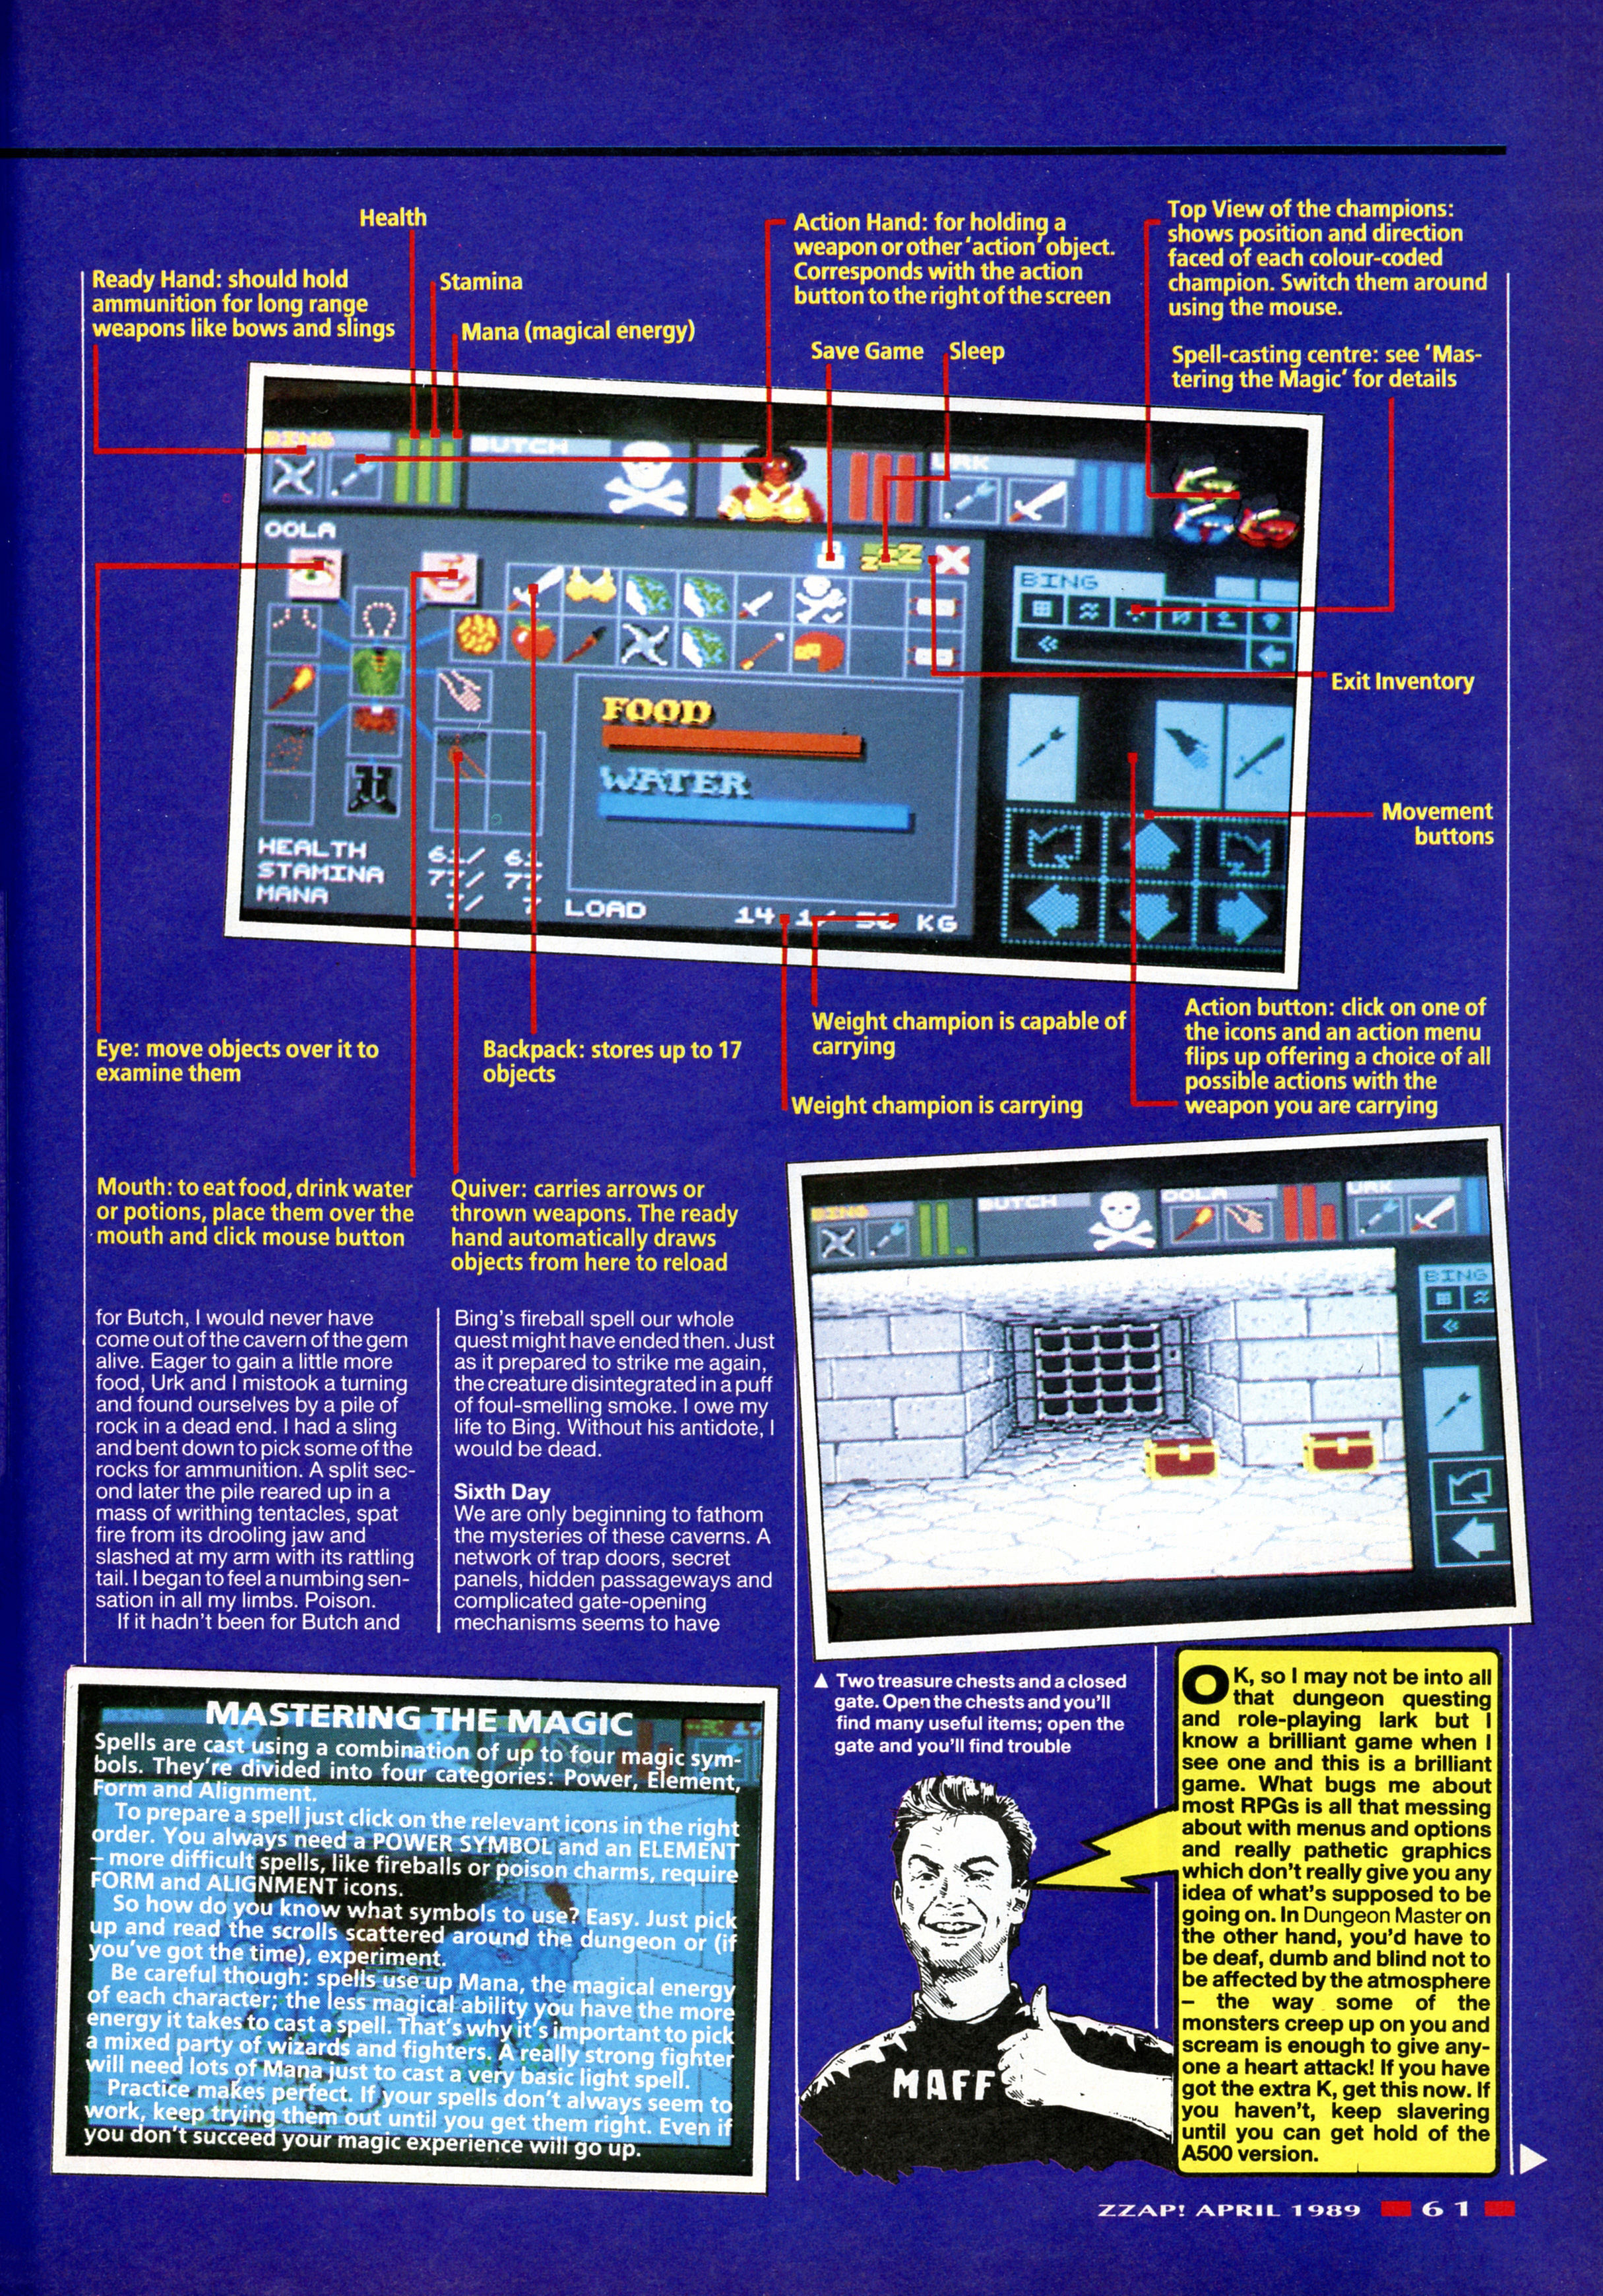 Dungeon Master for Amiga Review published in British magazine 'Zzap', Issue #48, April 1989, Page 61